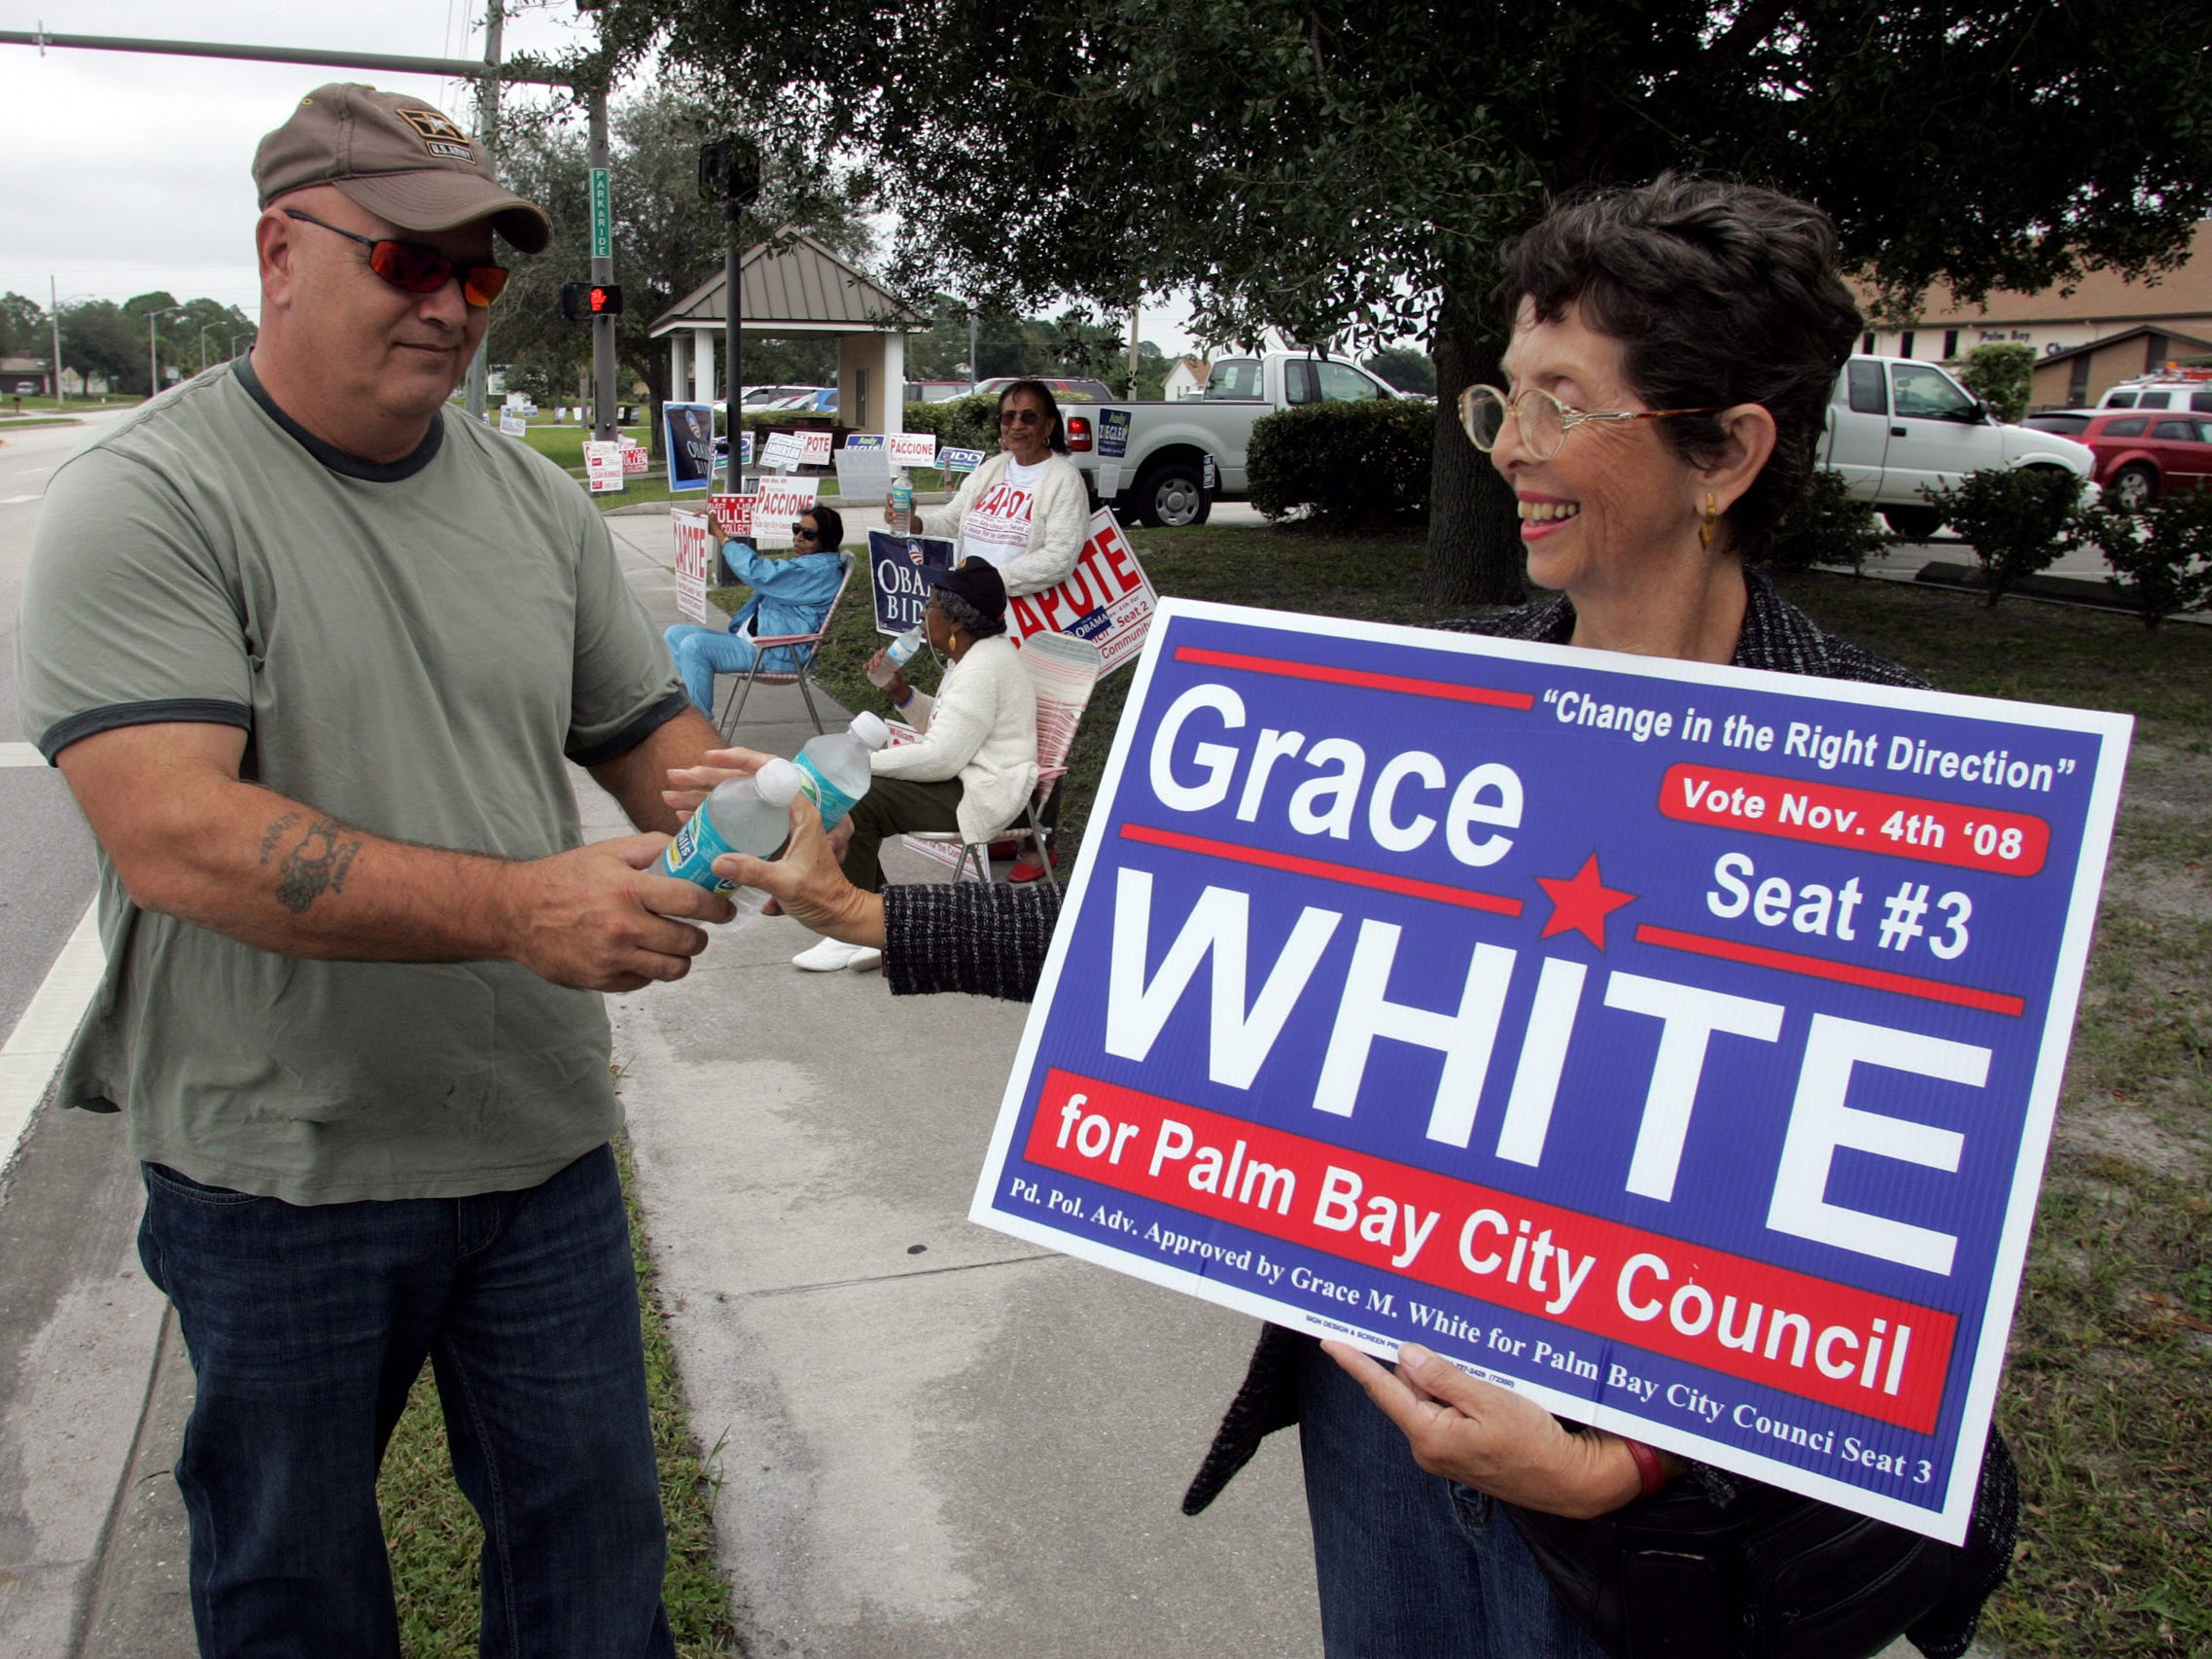 David Isnardi, left, husband of then-City Council member Kristine Isnardi, gives free water to volunteer Mary Mann while she waved campaign signs to passers-by and voters entering precincts 110 and 219 at Palm Bay Christian Church during voting day in Palm Bay on Nov. 4, 2008.